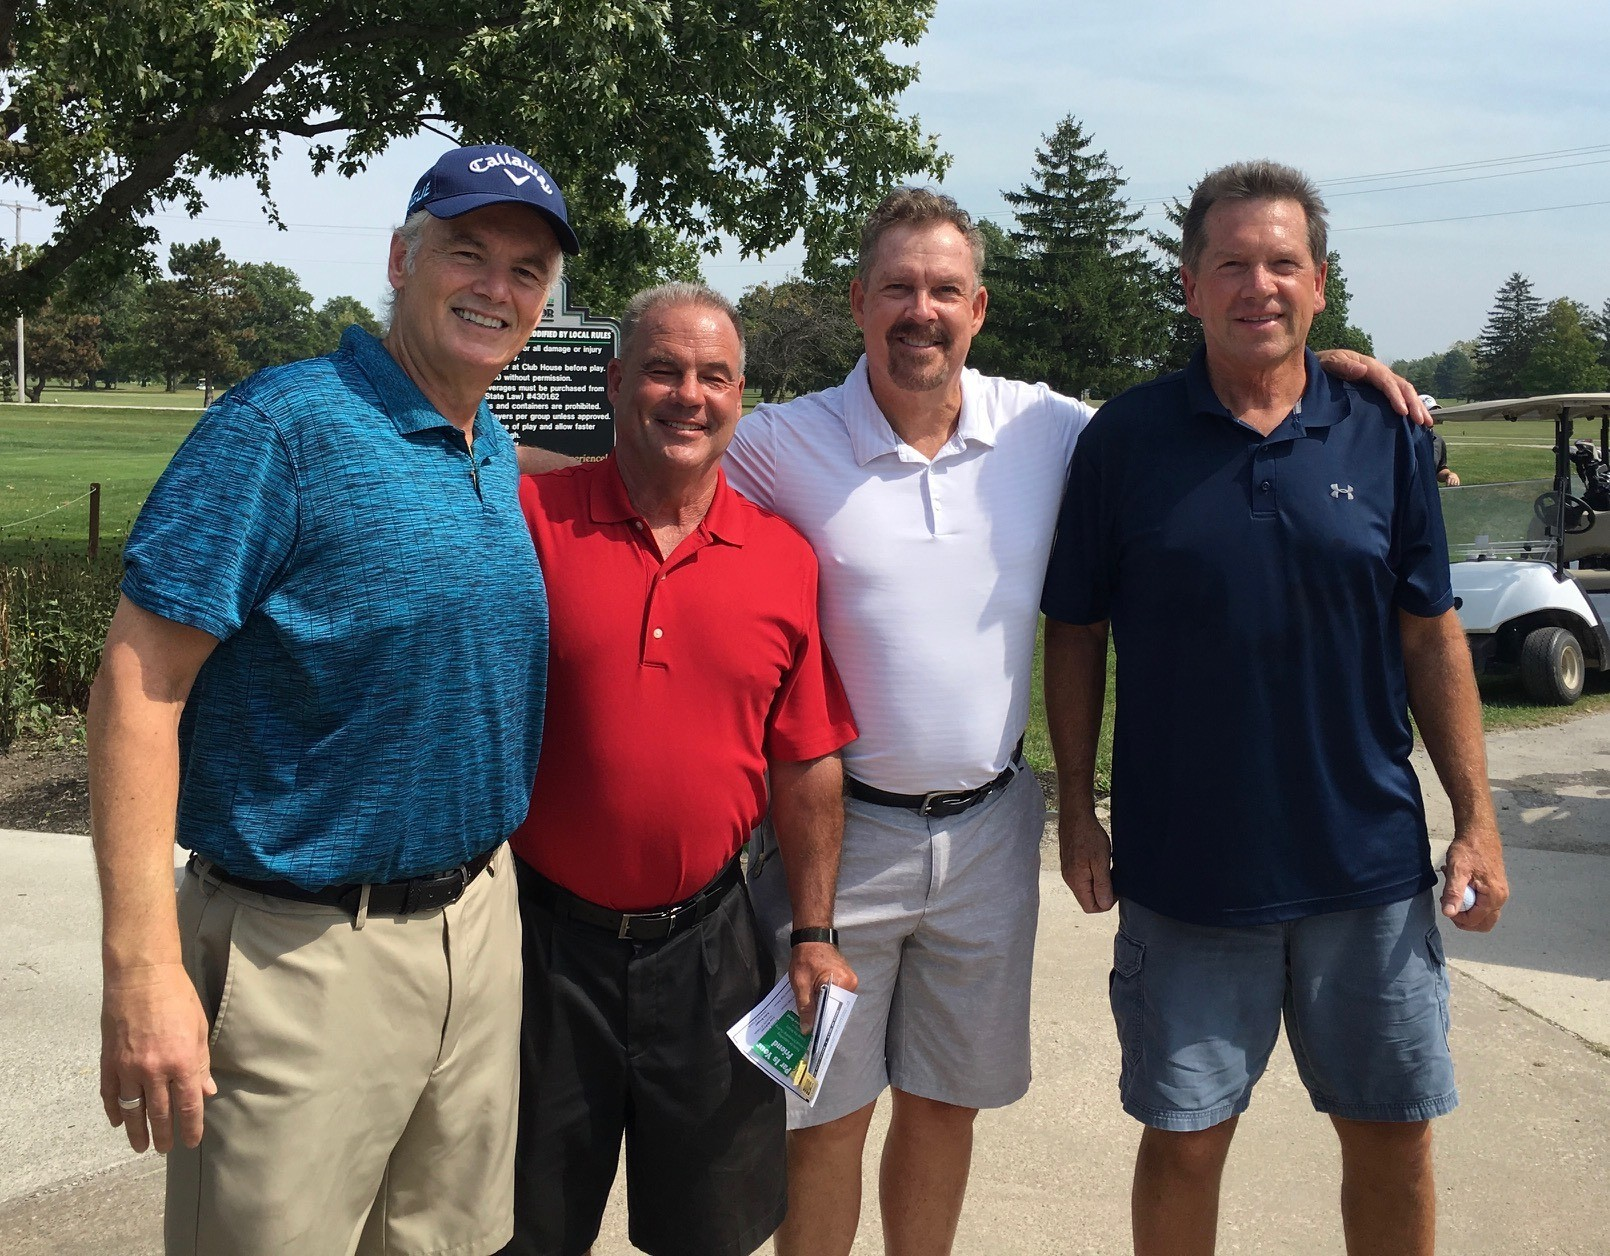 Pictured at the 21st Annual GenoaBank Golf Outing are Cumulus Radio Host Celebrities (from left) Denny Schaffer, John Guitteau, Timmy Morrison and Chuck O'Shea. (Submitted photo)